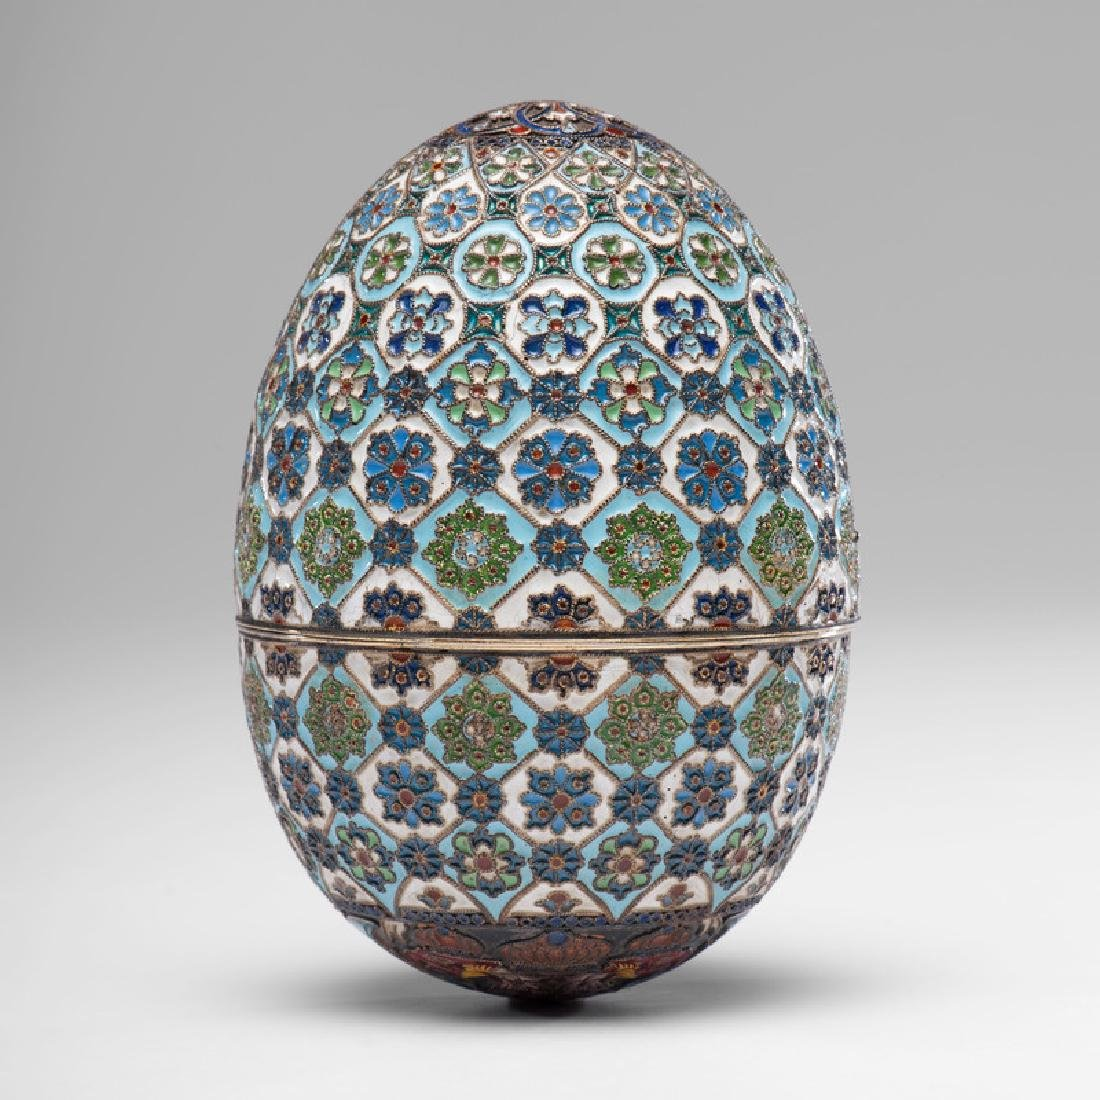 Russian Silver-Gilt and Enamel Egg